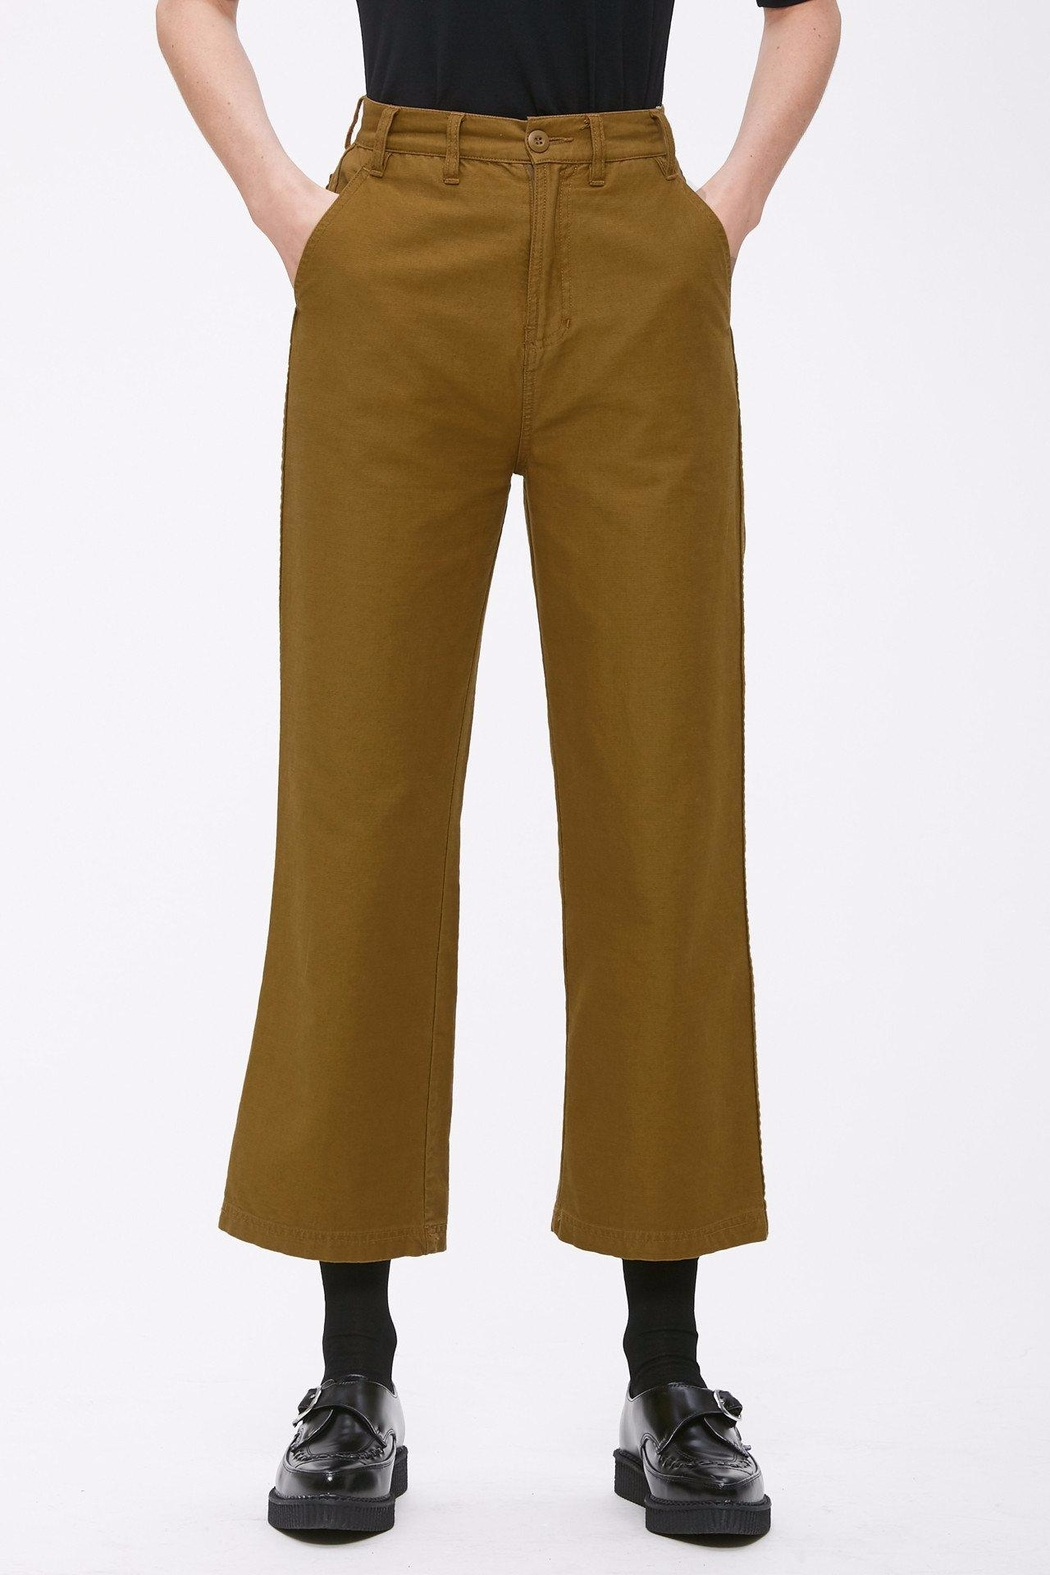 Obey Cropped Military Pant - Main Image